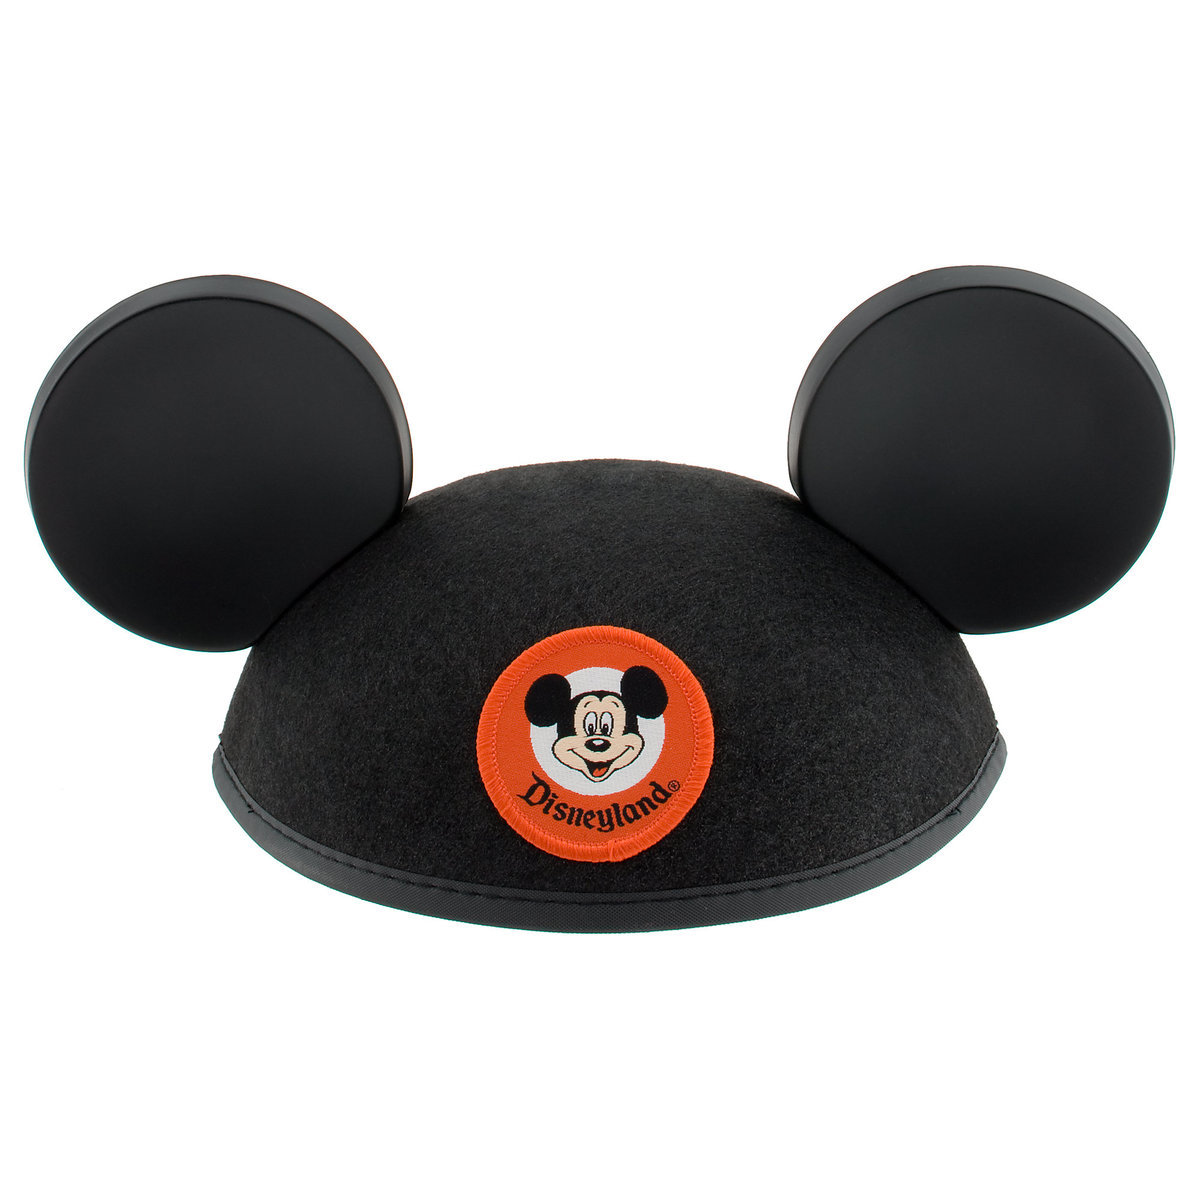 9f172f4e08c7d Product Image of Mickey Mouse Ear Hat for Baby - Disneyland -  Personalizable   1